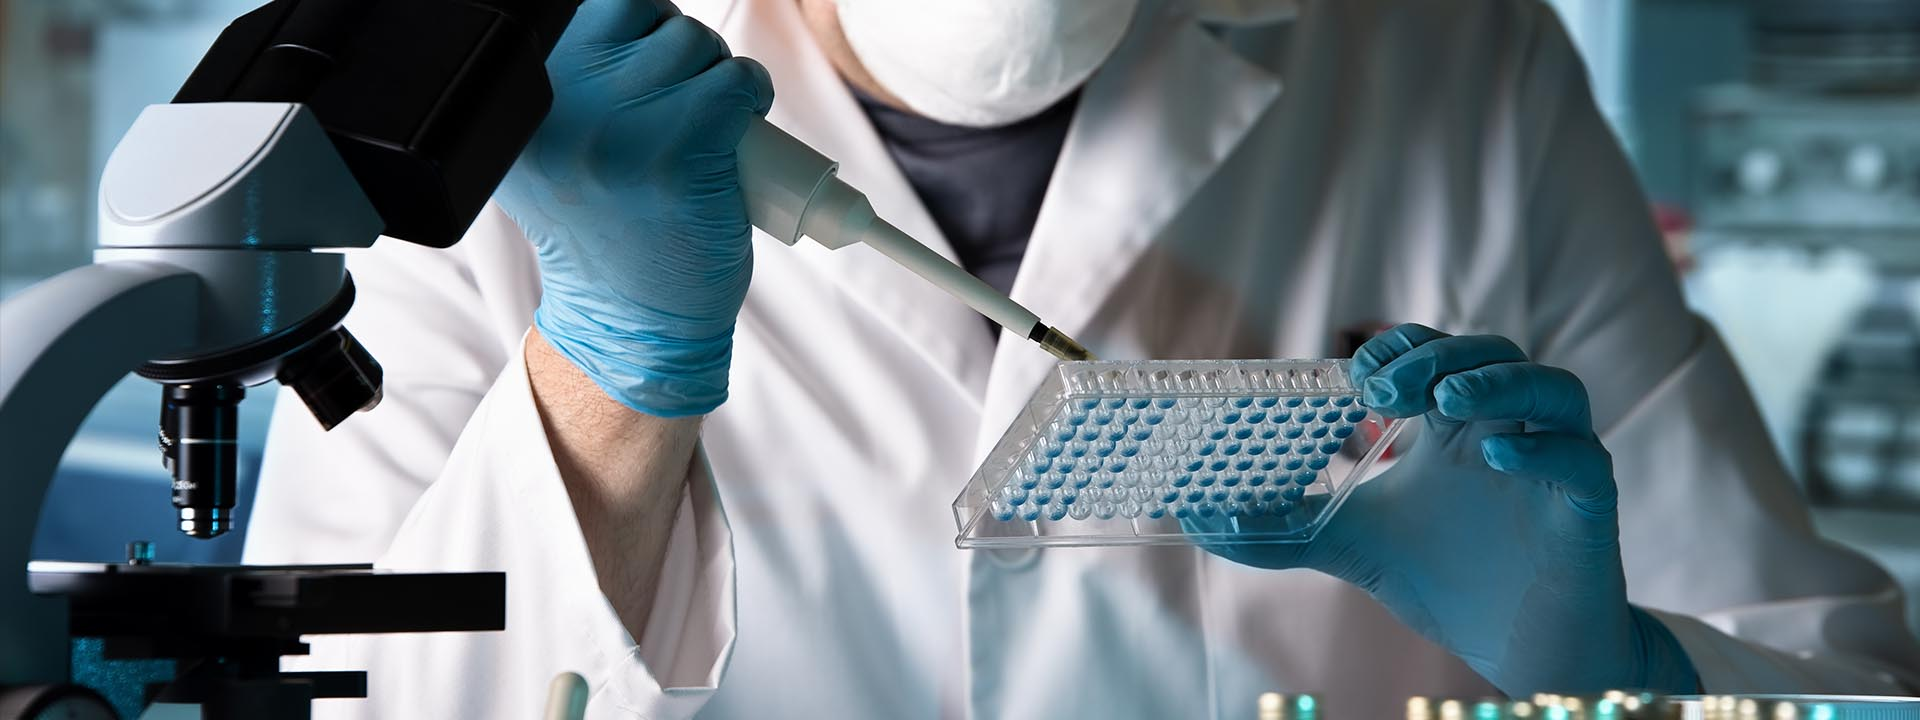 Life science researcher performing ELISA test pipette onto plate